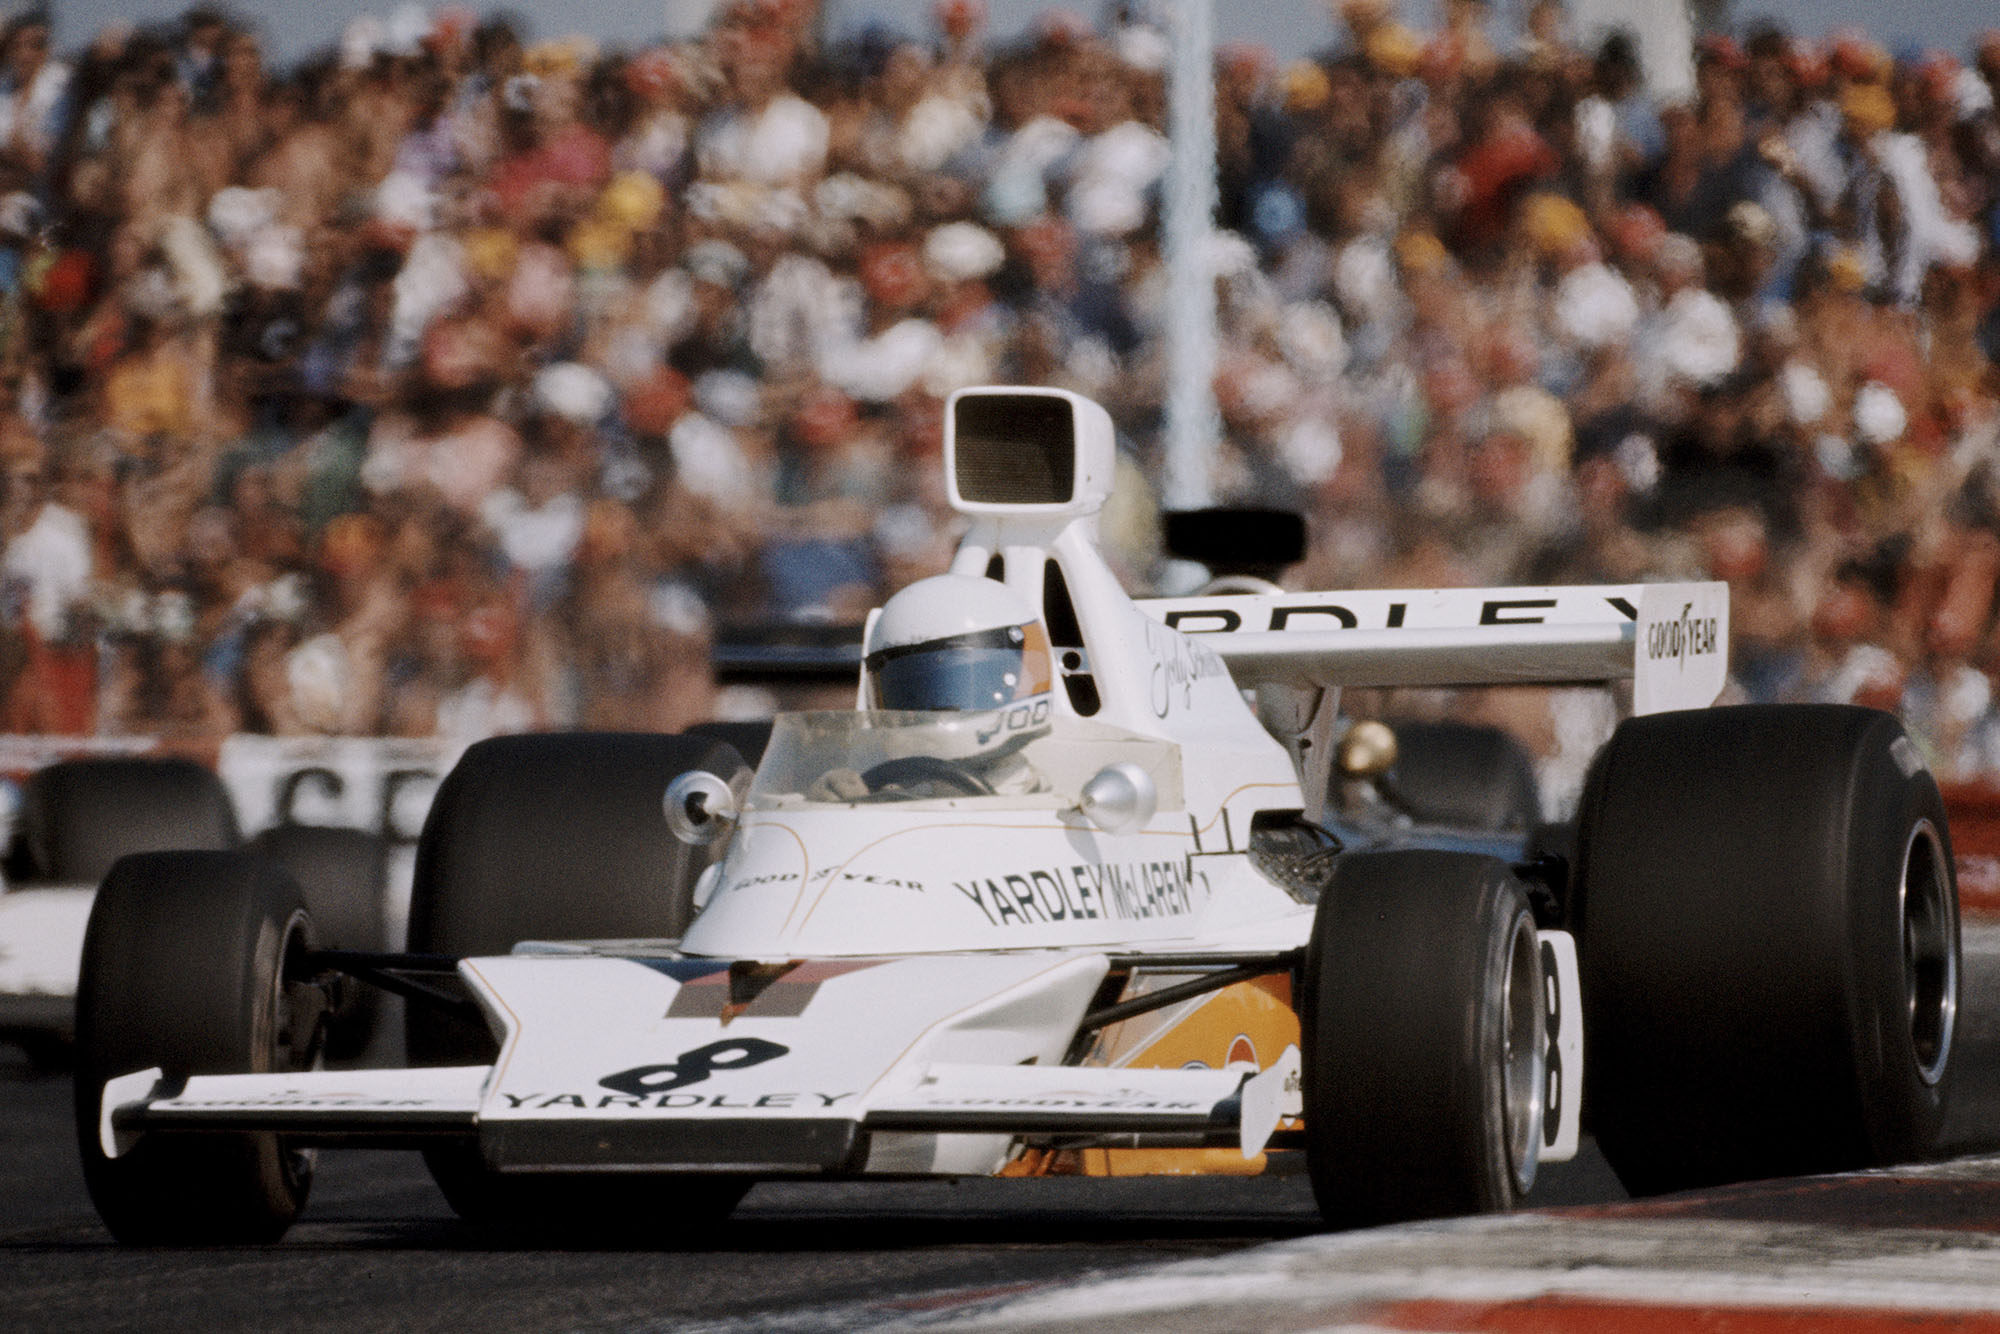 Jody Scheckter driving for McLaren at the 1973 French Grand Prix, Paul Ricard.